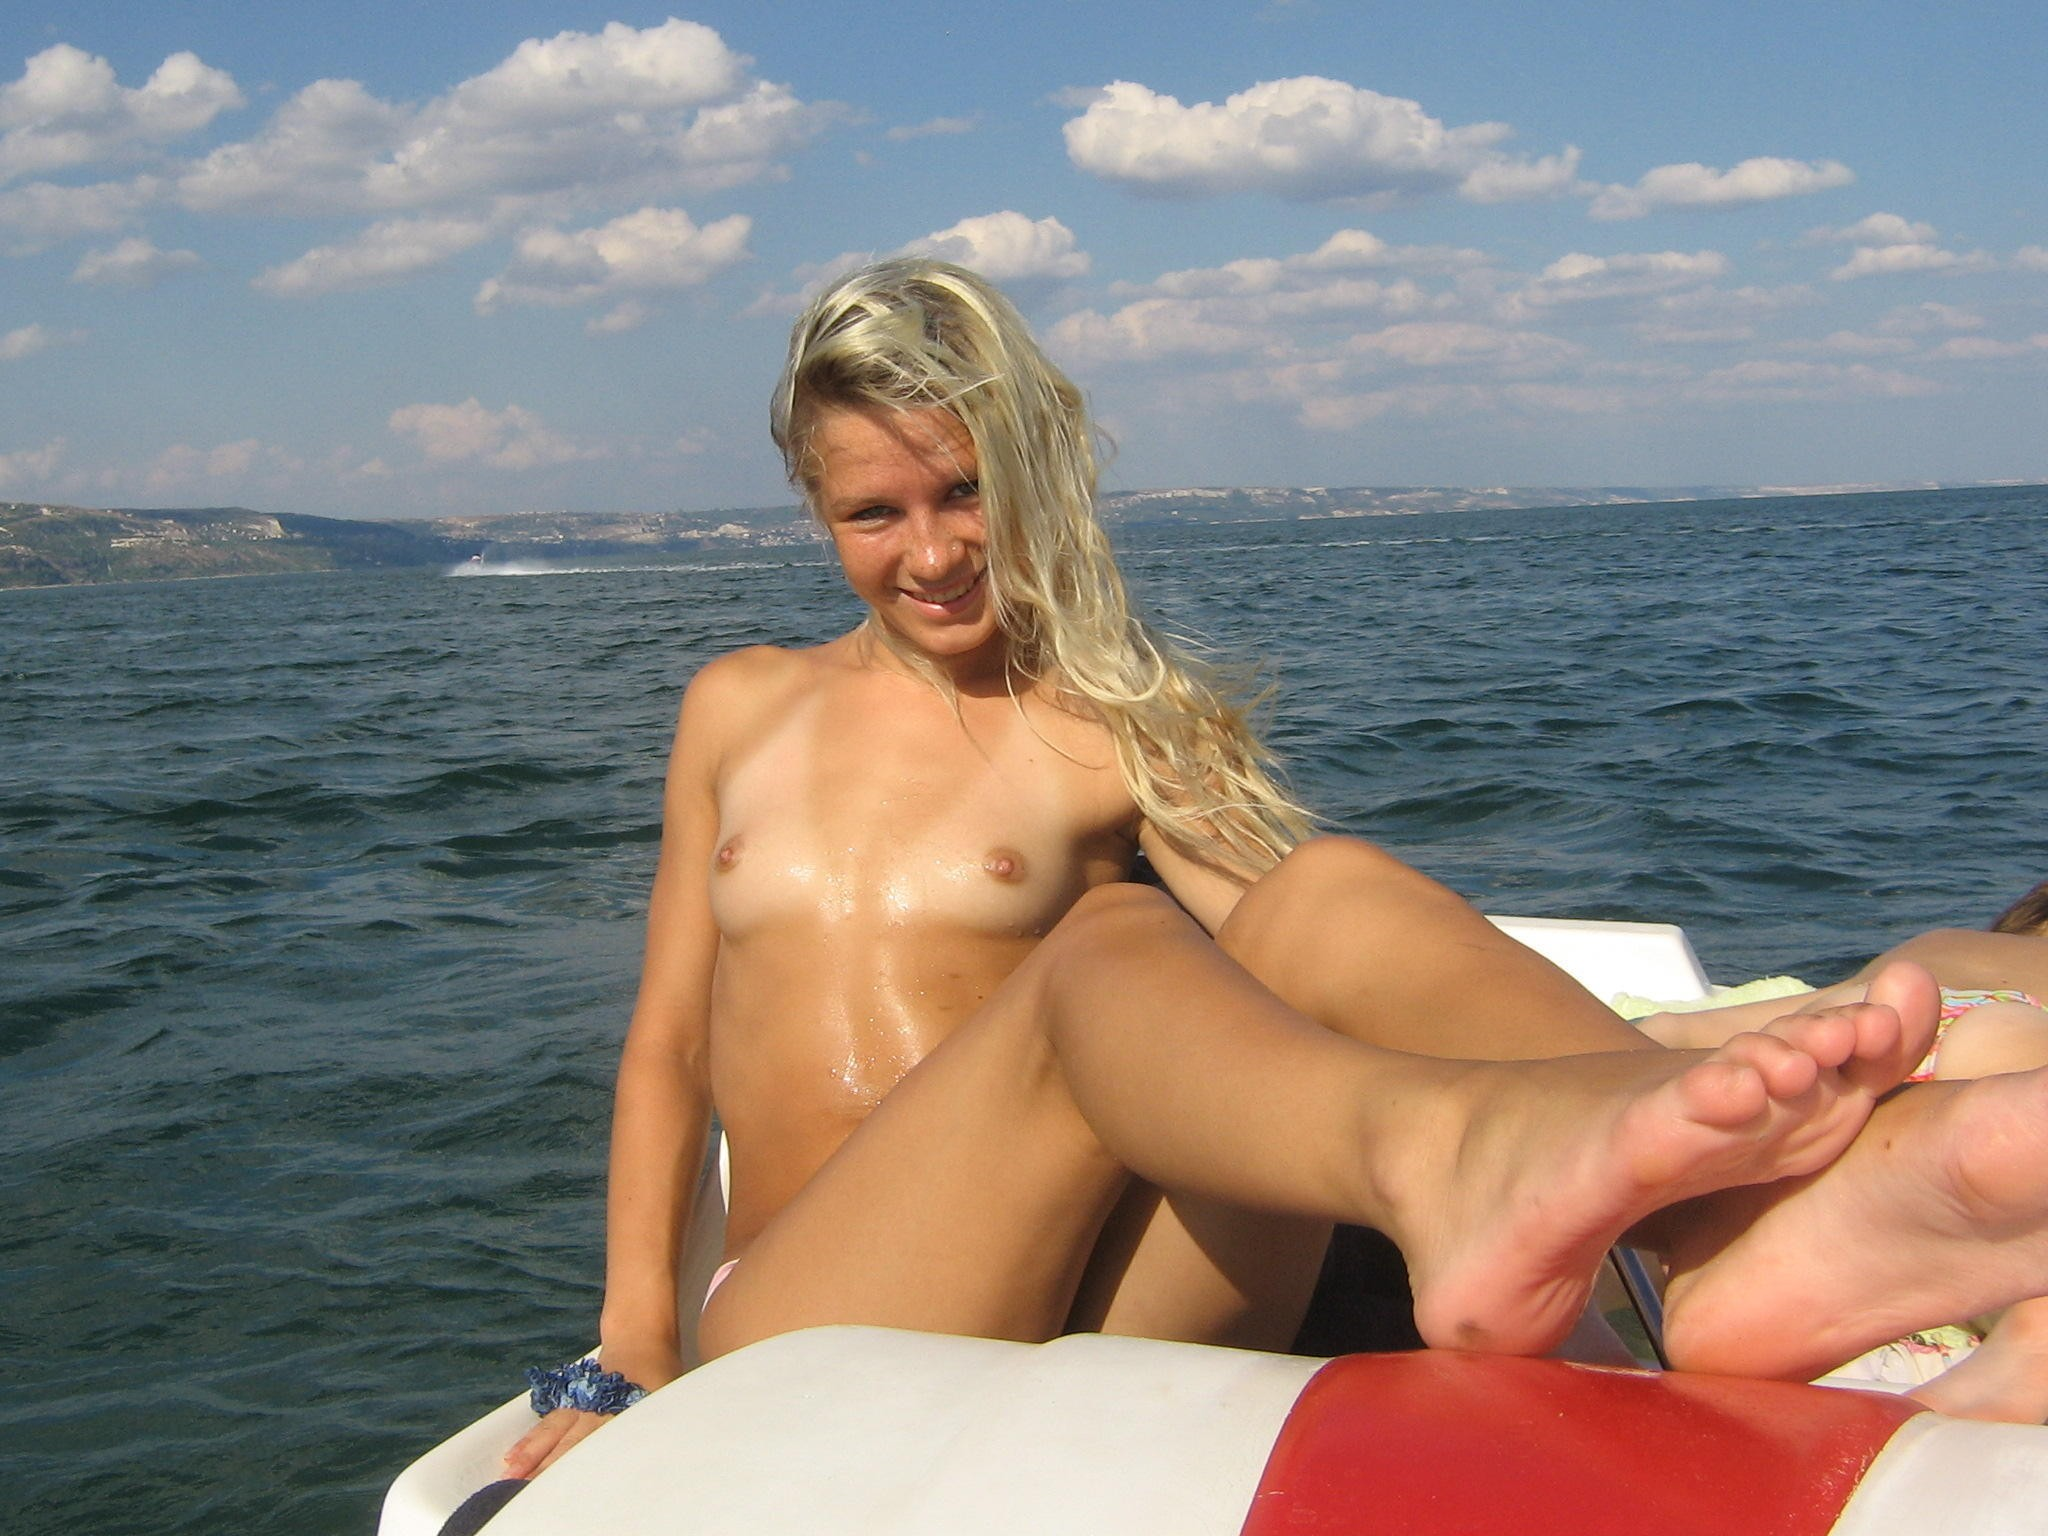 Hard fucking topless woman on a boat amputee girls